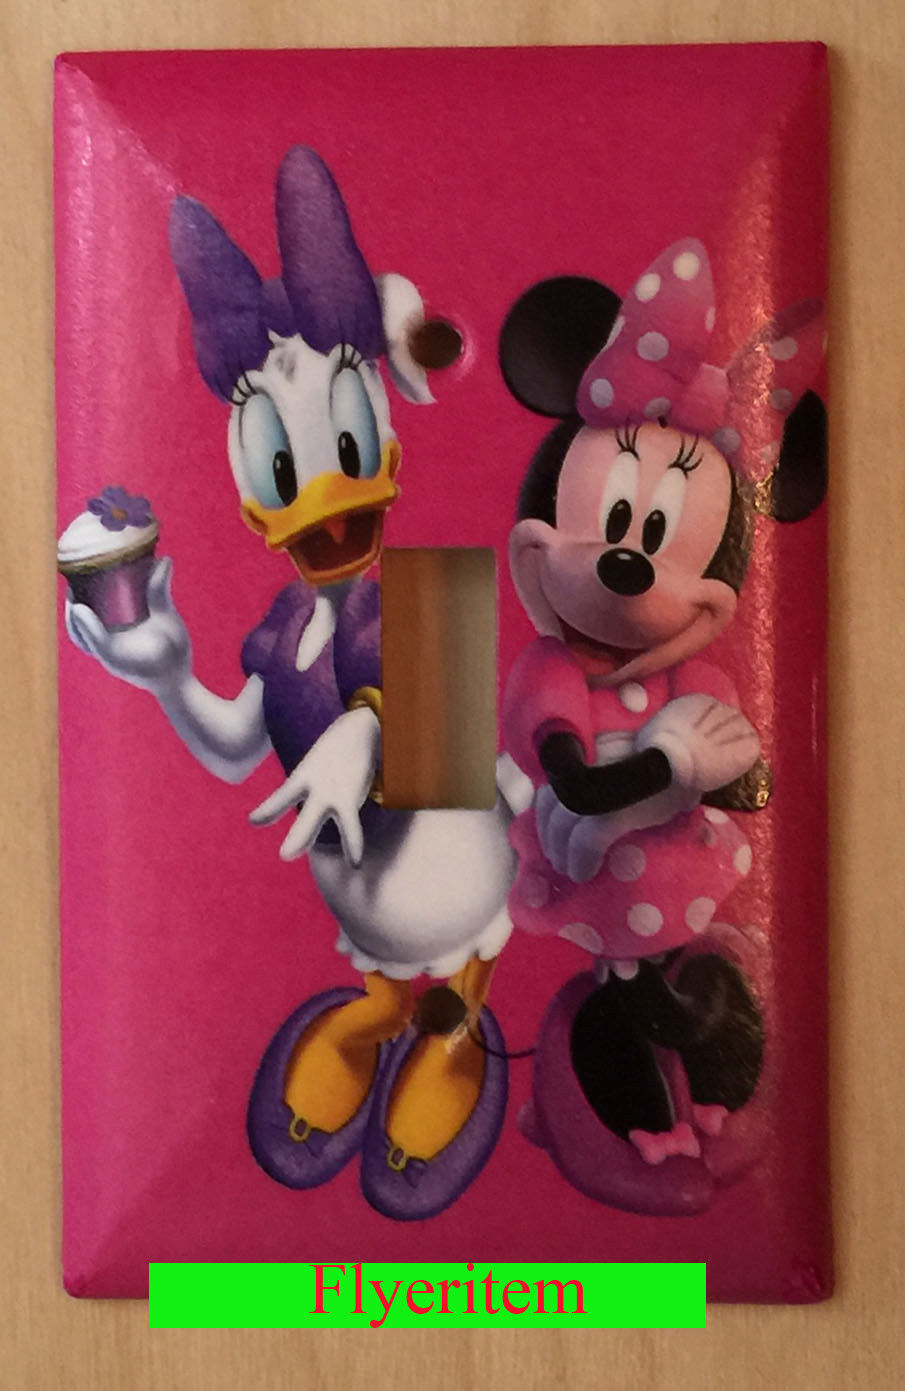 Minnie Mouse Daisy CupCake Light Switch Power Outlet Wall Cover Plate decor